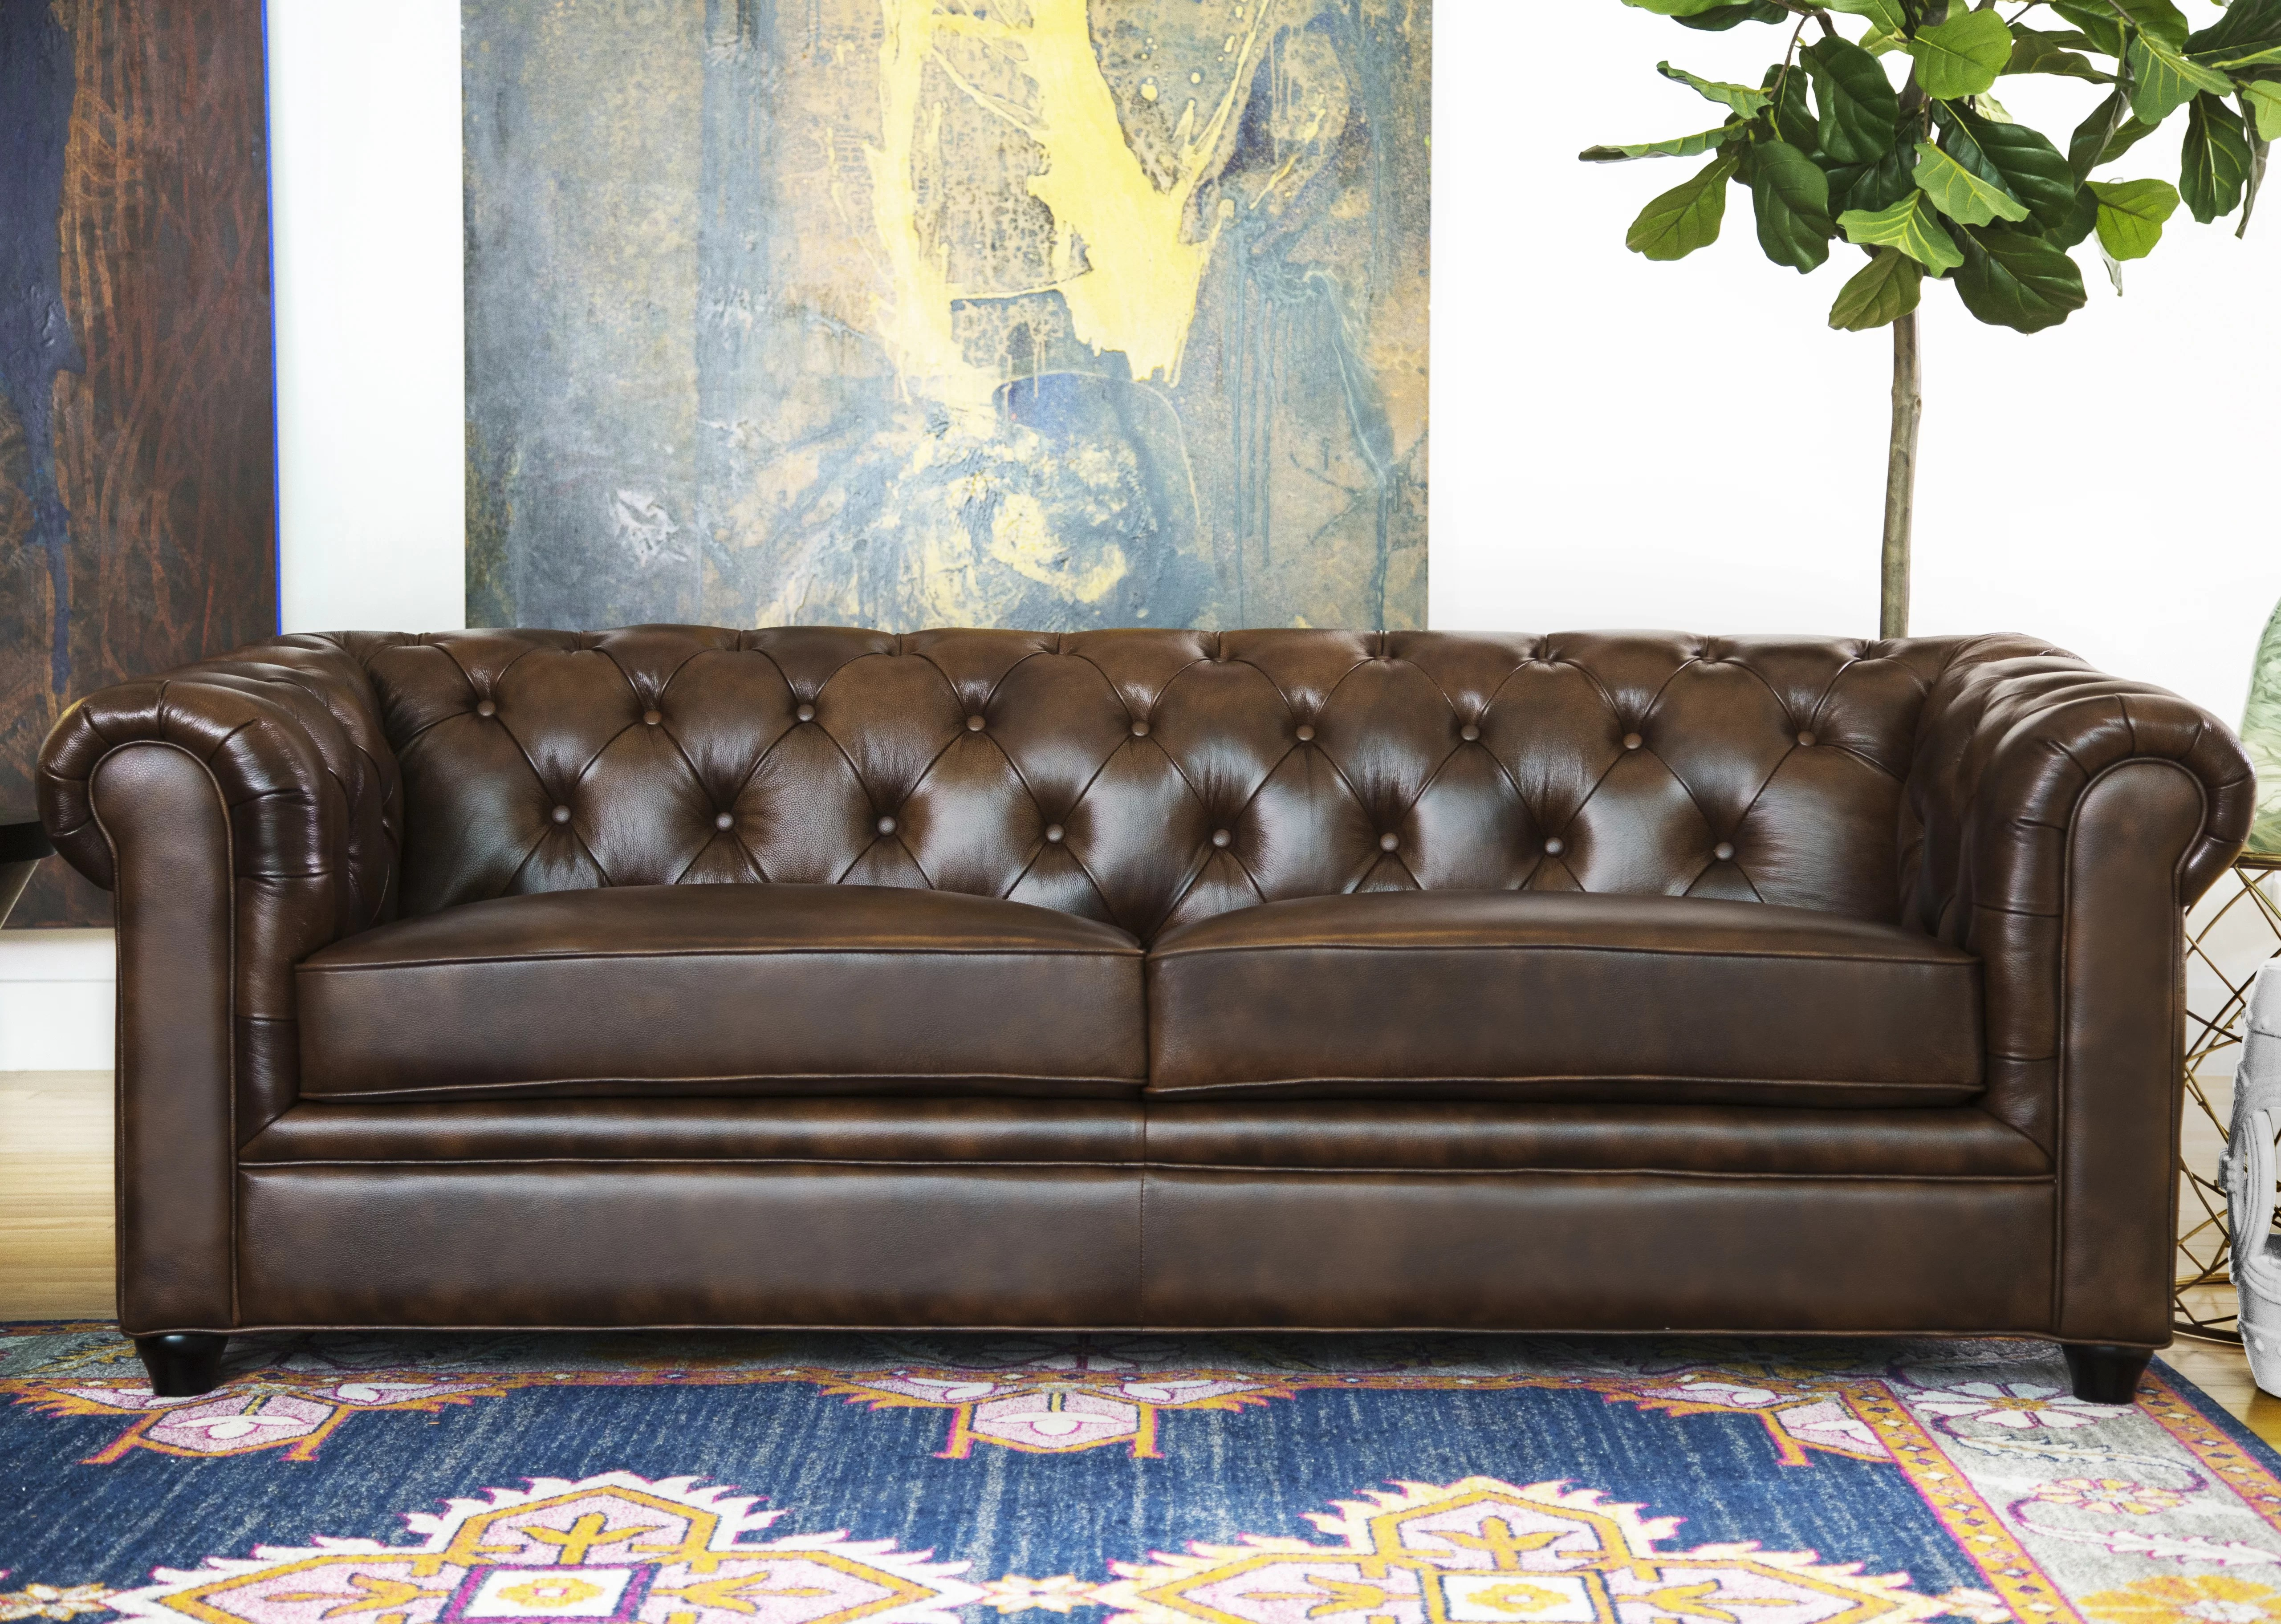 Sofa Foam Cleaner Cleaning 101 How To Clean A Leather Sofa Wayfair